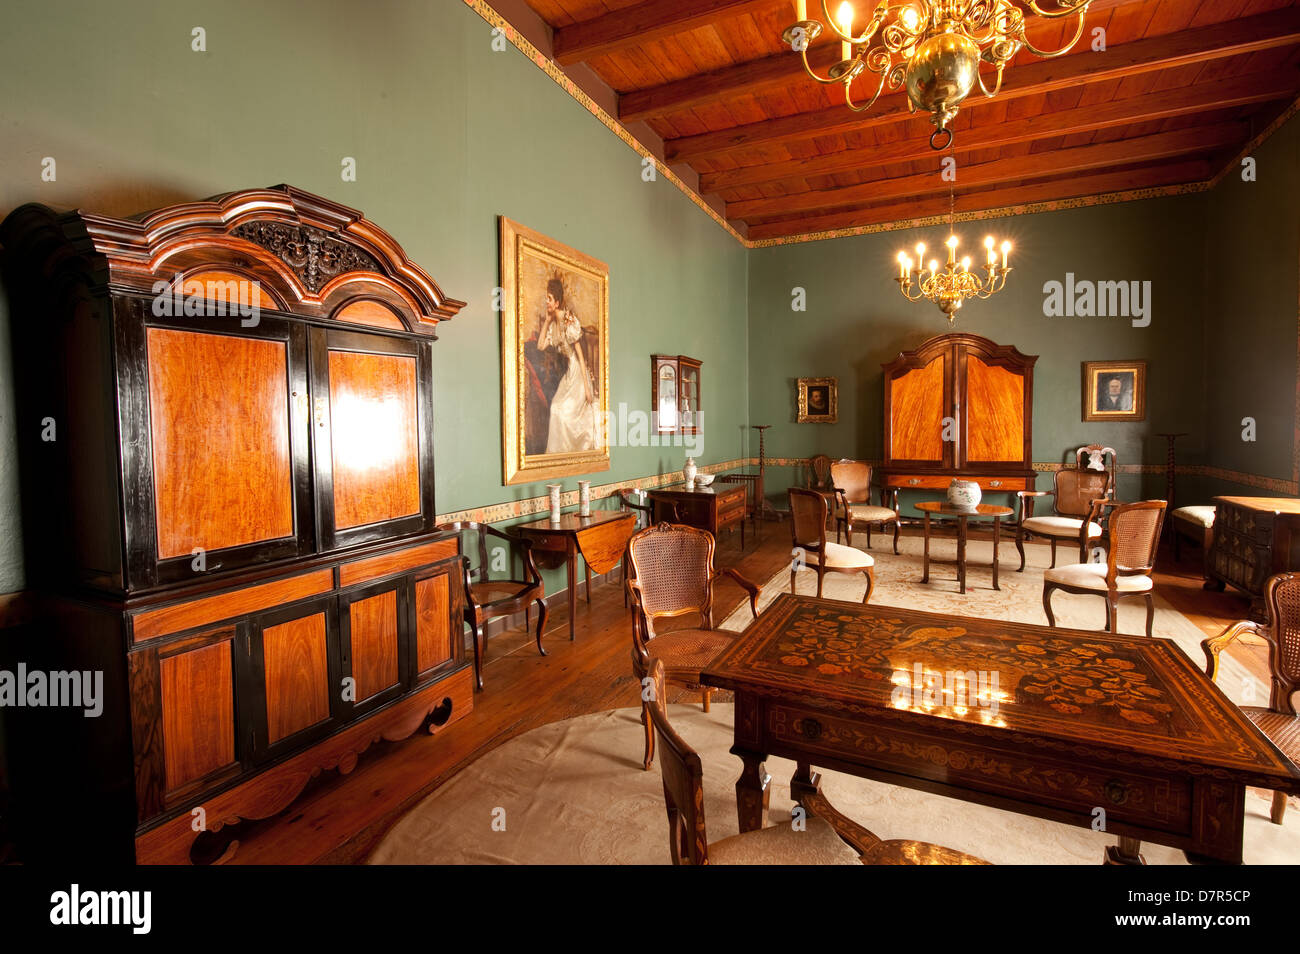 Dutch House Interior Stock Photos & Dutch House Interior Stock ...